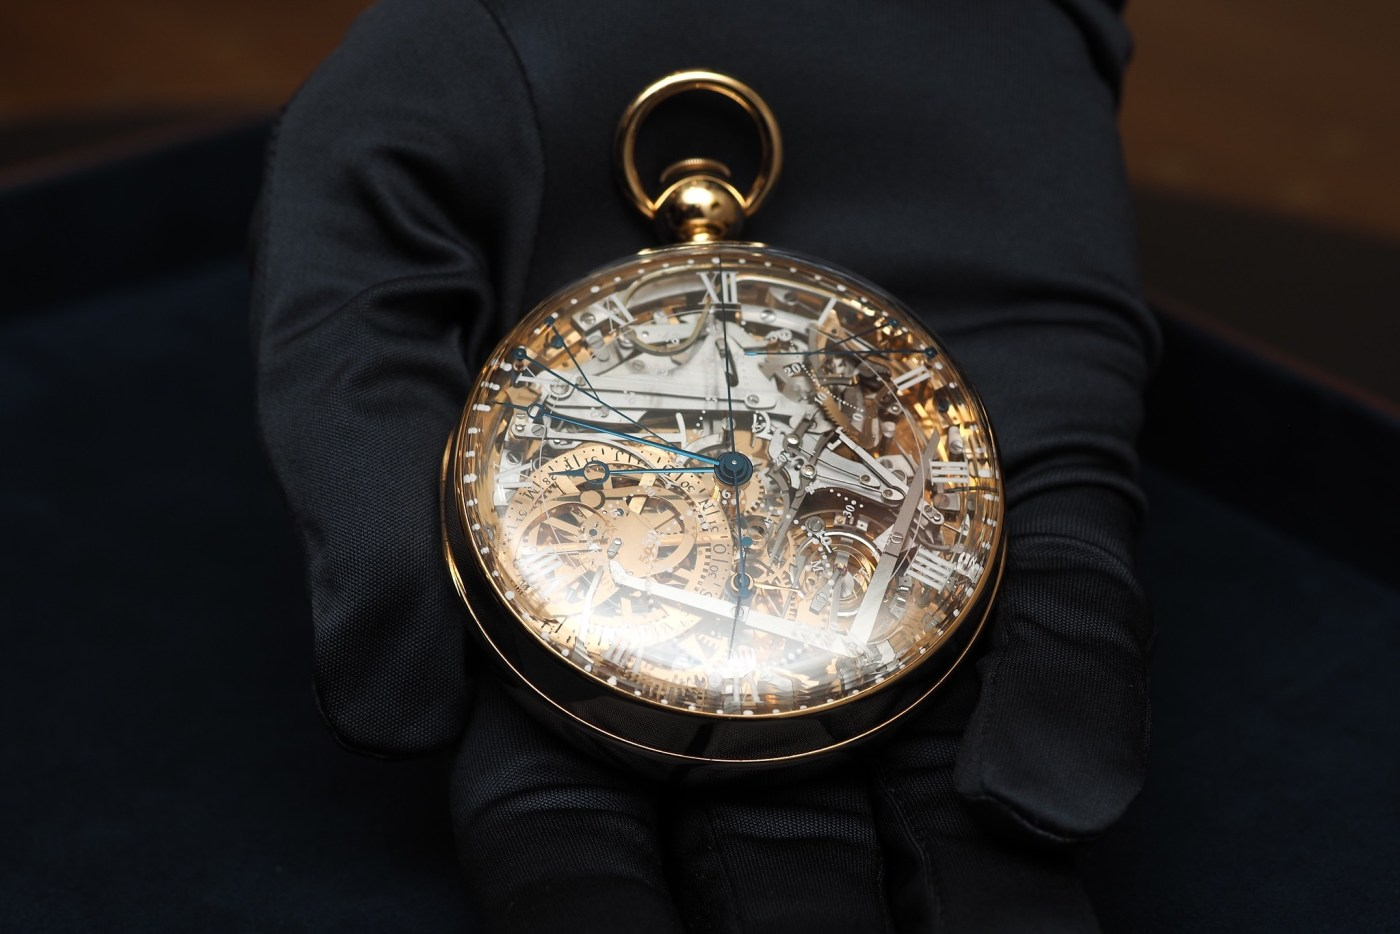 One-of-a-kind Marie Antoinette Number 1160 pocket watch (the only recreation of the original)